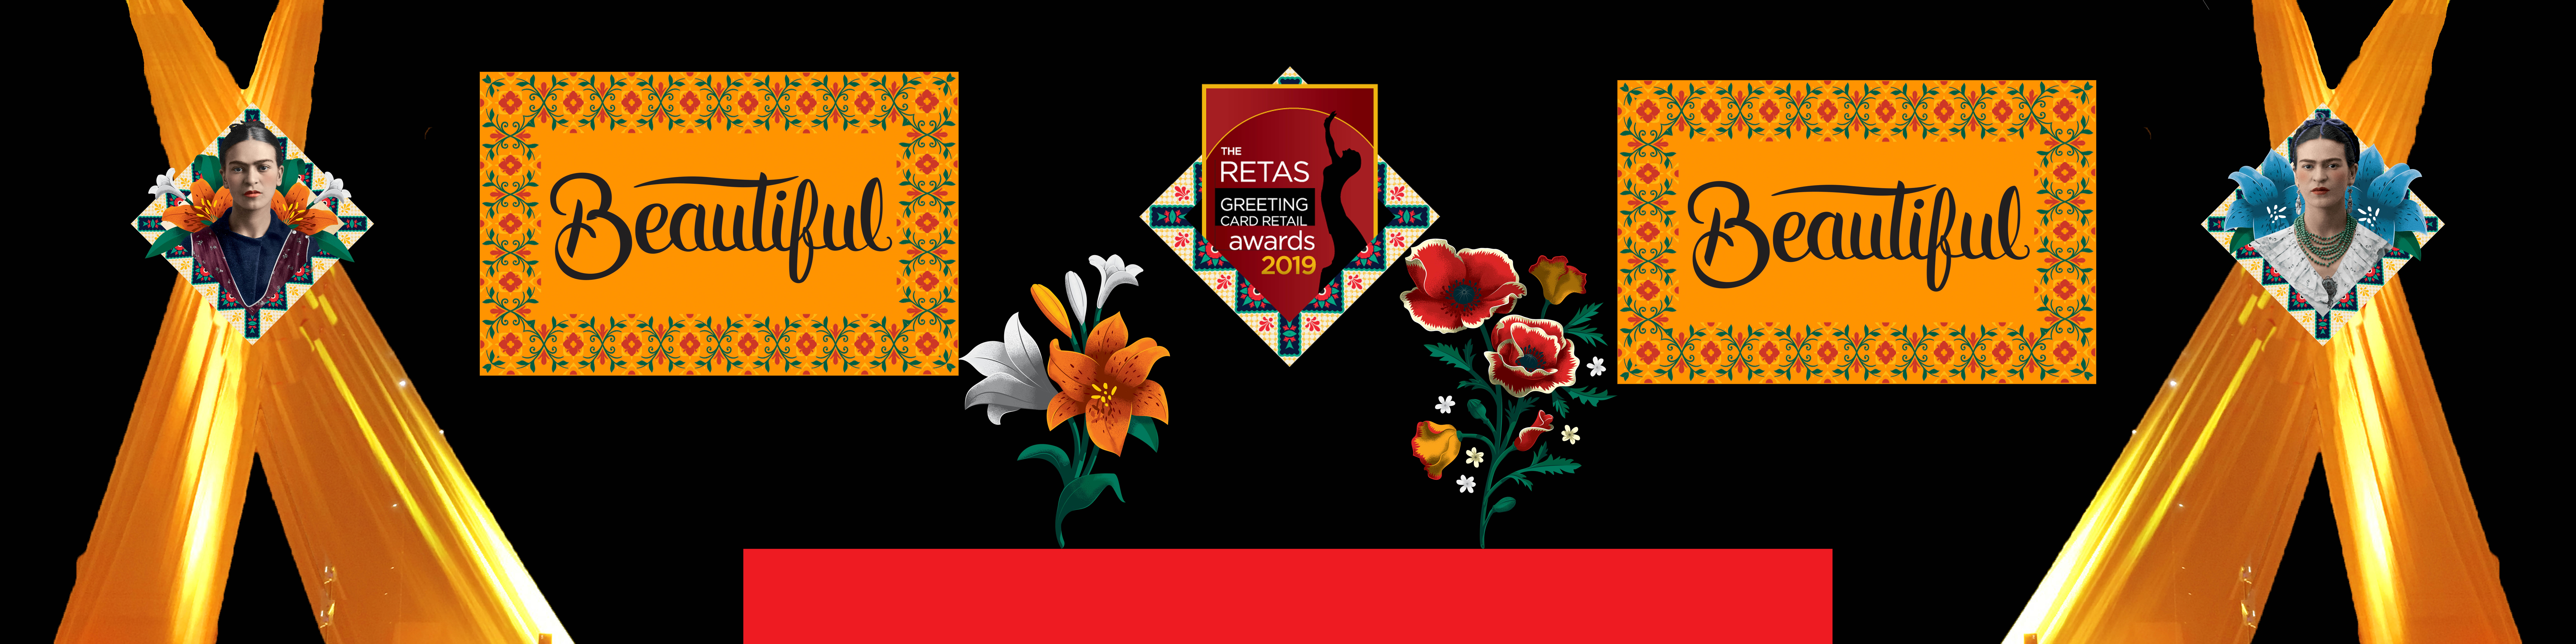 Above: The stage set and various other elements will reflect the Frida Kahlo theme of The Retas 2019.